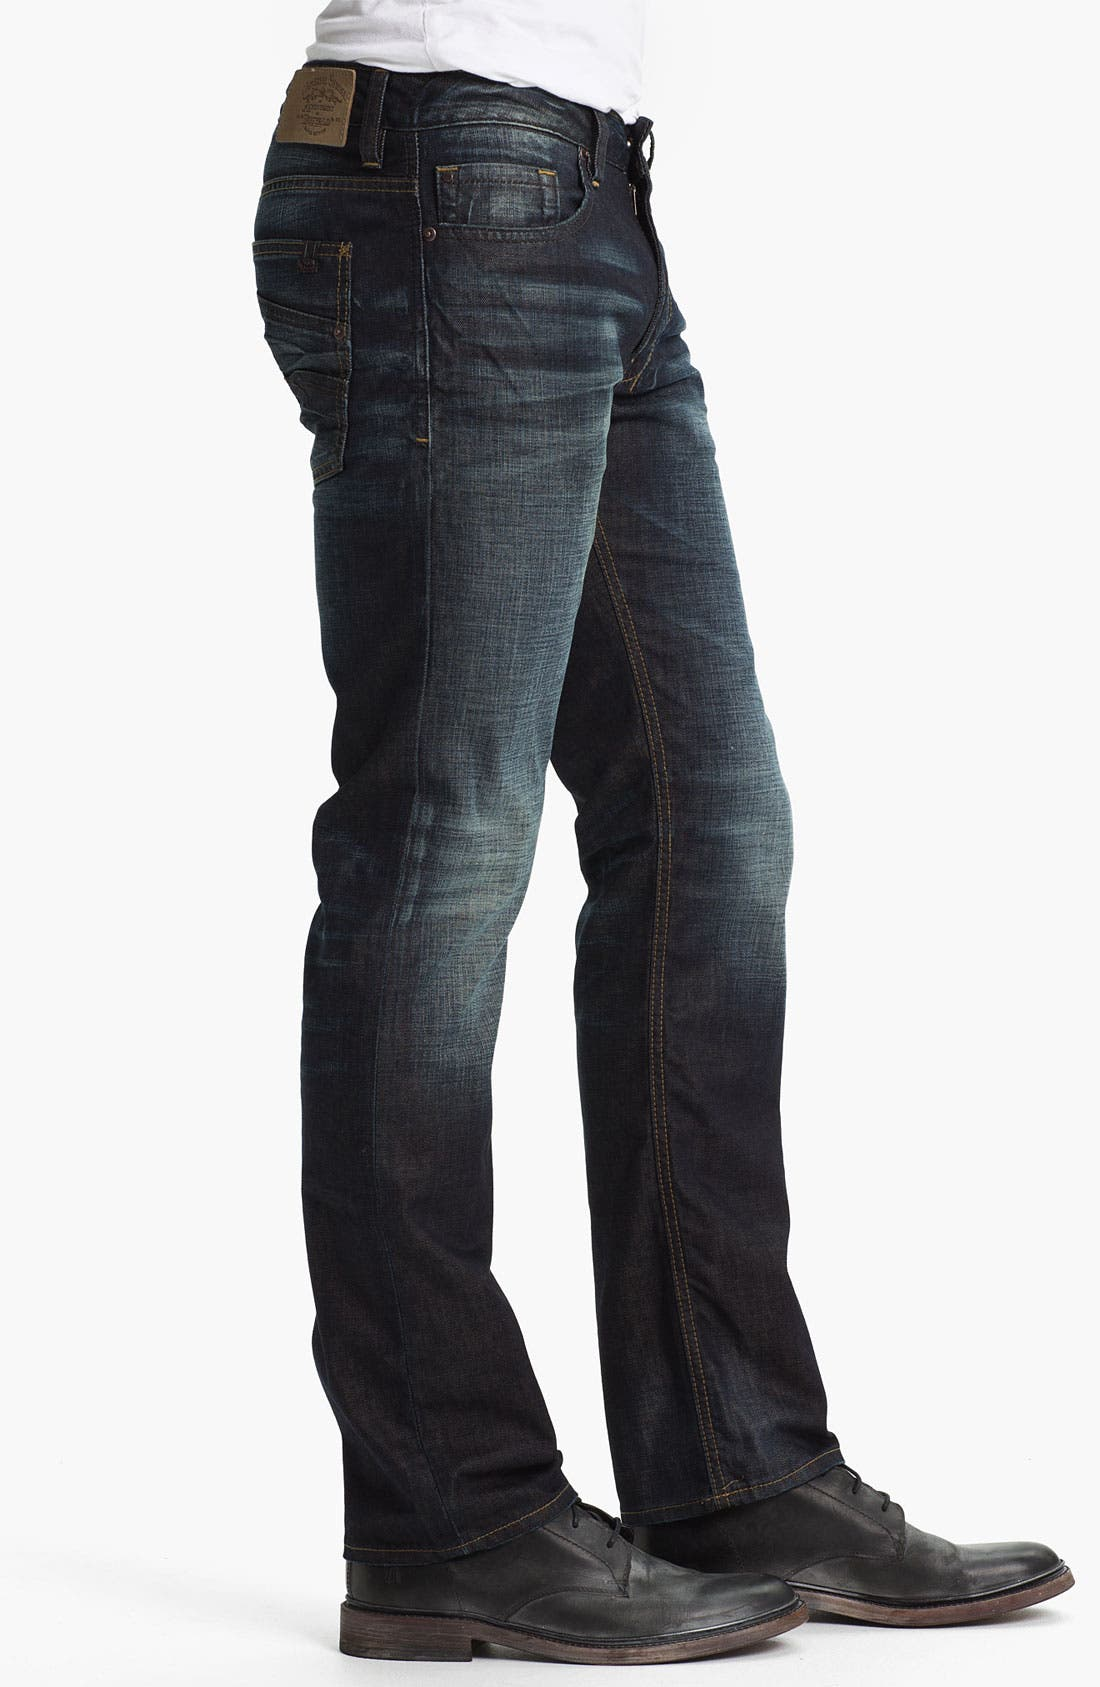 Alternate Image 3  - Buffalo Jeans 'Six' Slim Straight Leg Jeans (Veined/Dirty) (Online Exclusive)